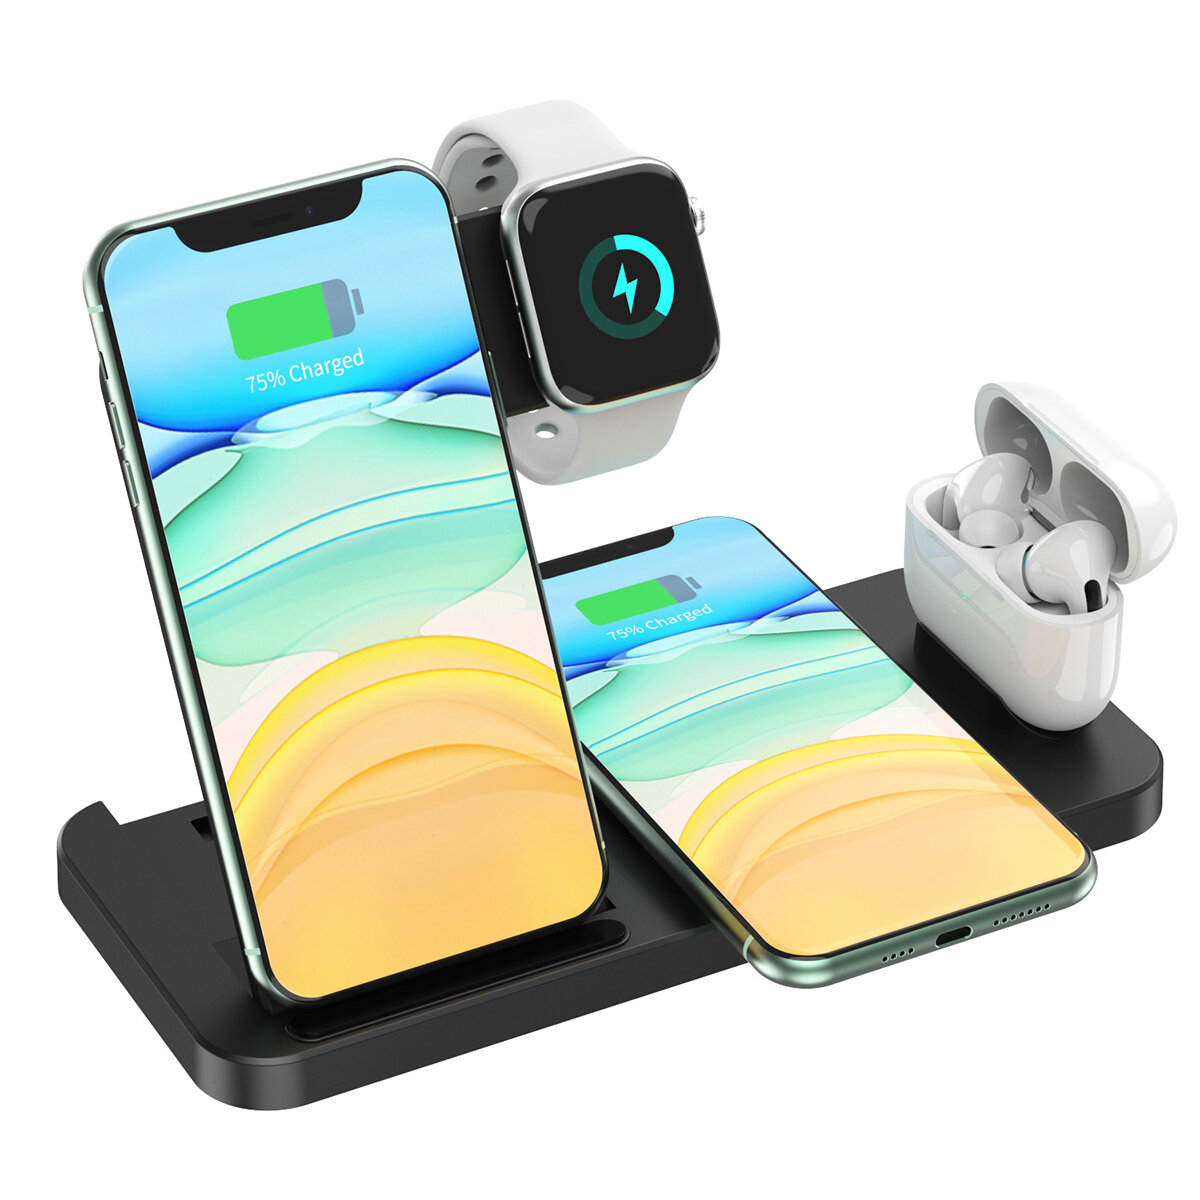 4-In-1 Wireless Charging Station 15W Fast Dock Charger Stand Phone Watch Pods Support Wireless Charging Equipment